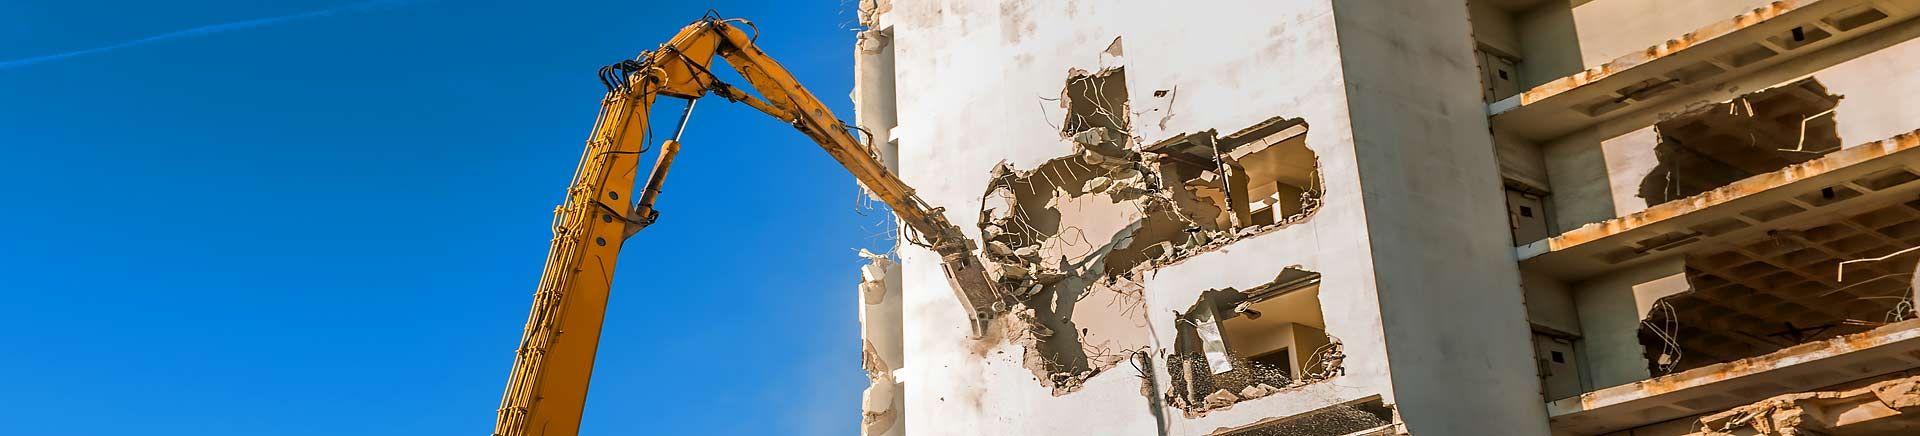 Demolition-Plan-Design-and-Engineering-1